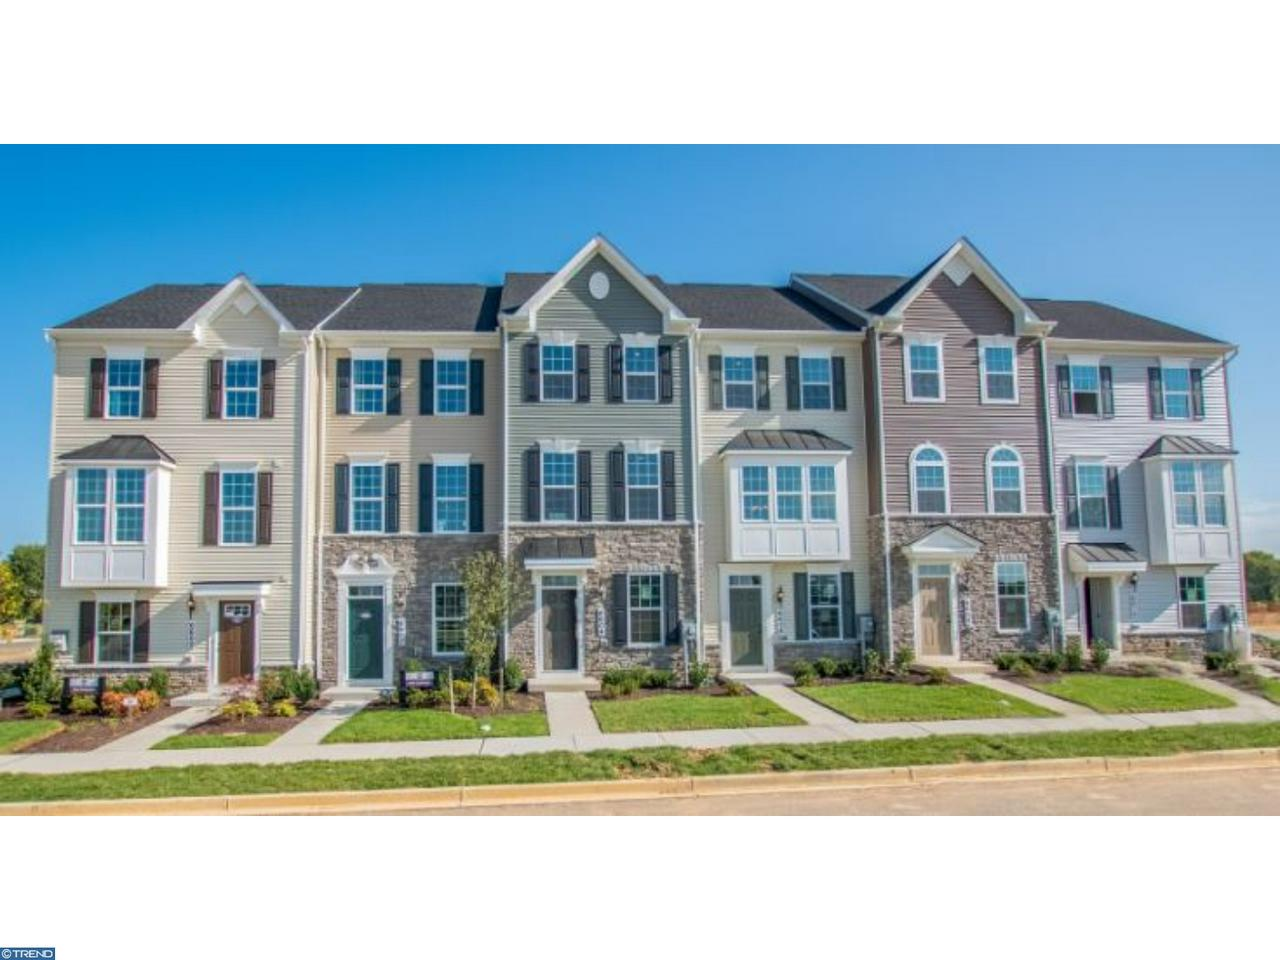 Image of townhouse in Parkway South Ridge, Middletown, DE